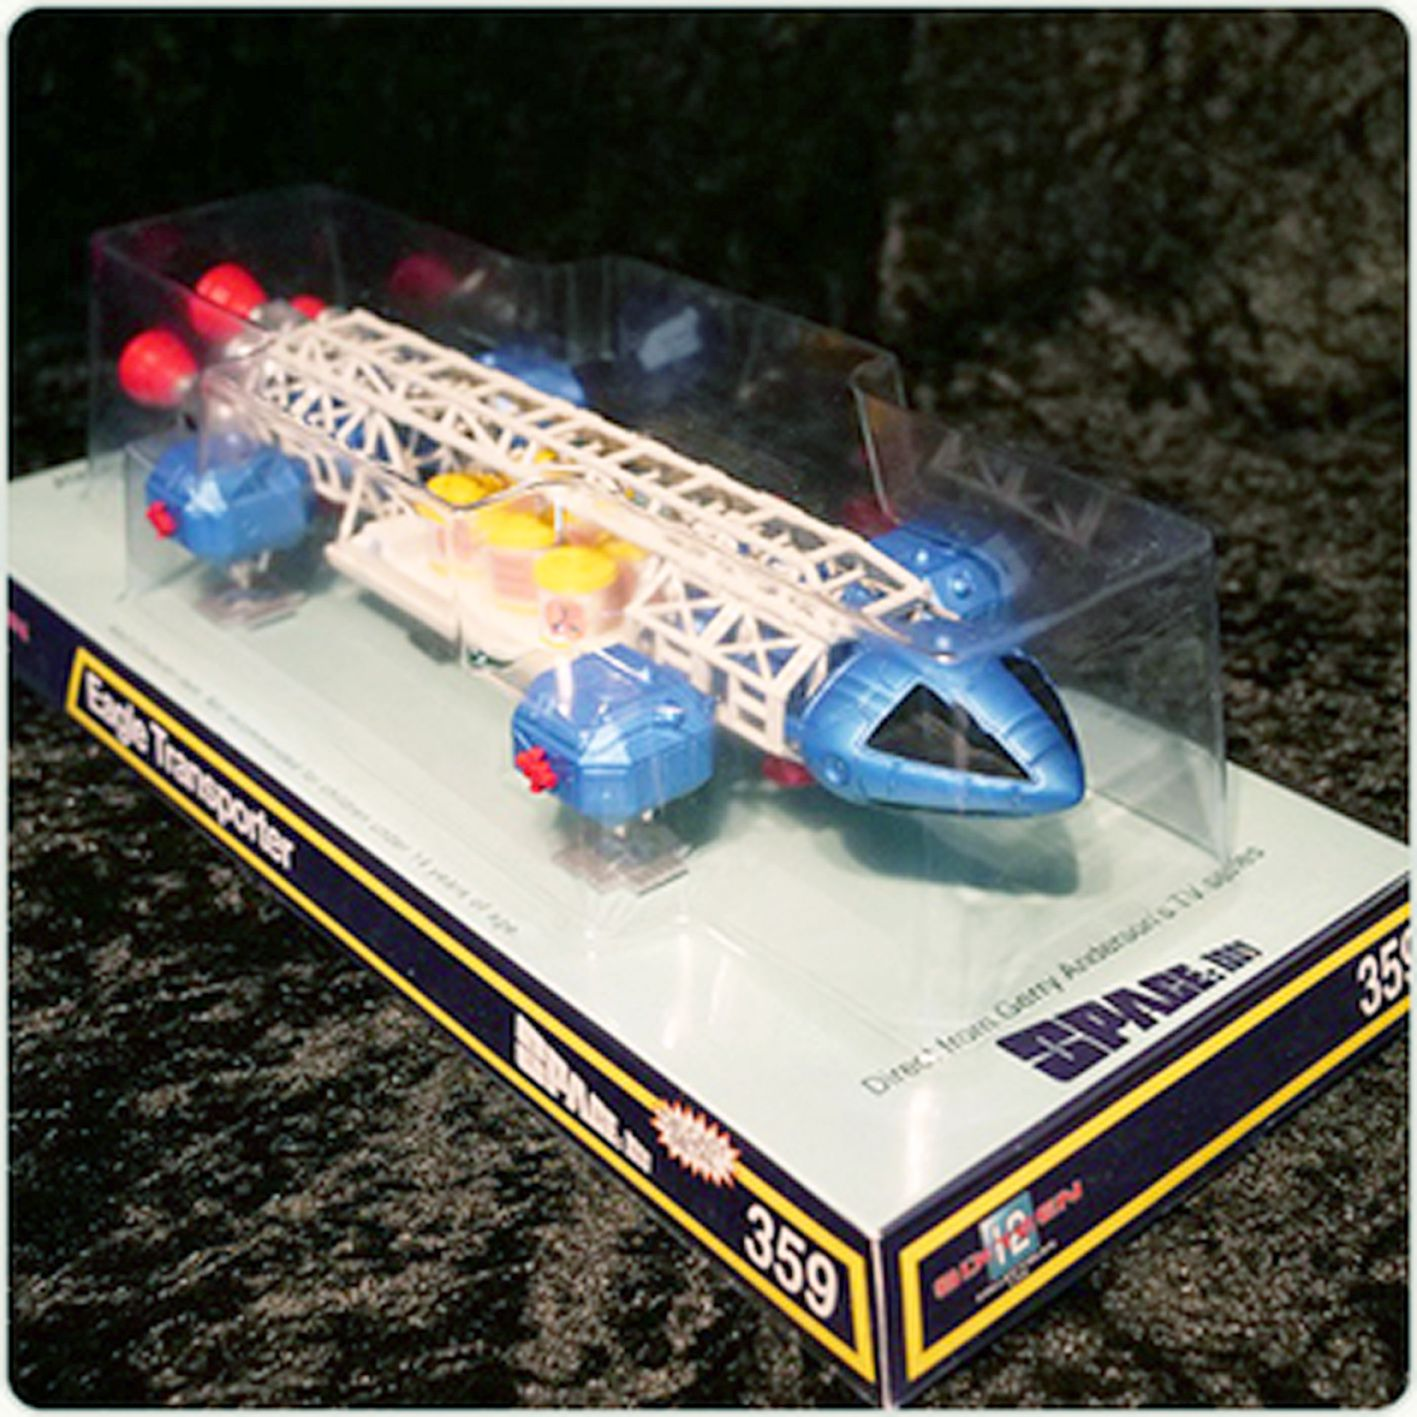 Space 1999 (Cosmos 1999) - Retro Die-cast Model Eagle Freighter (Aigle Cargo) - Sixteen 12